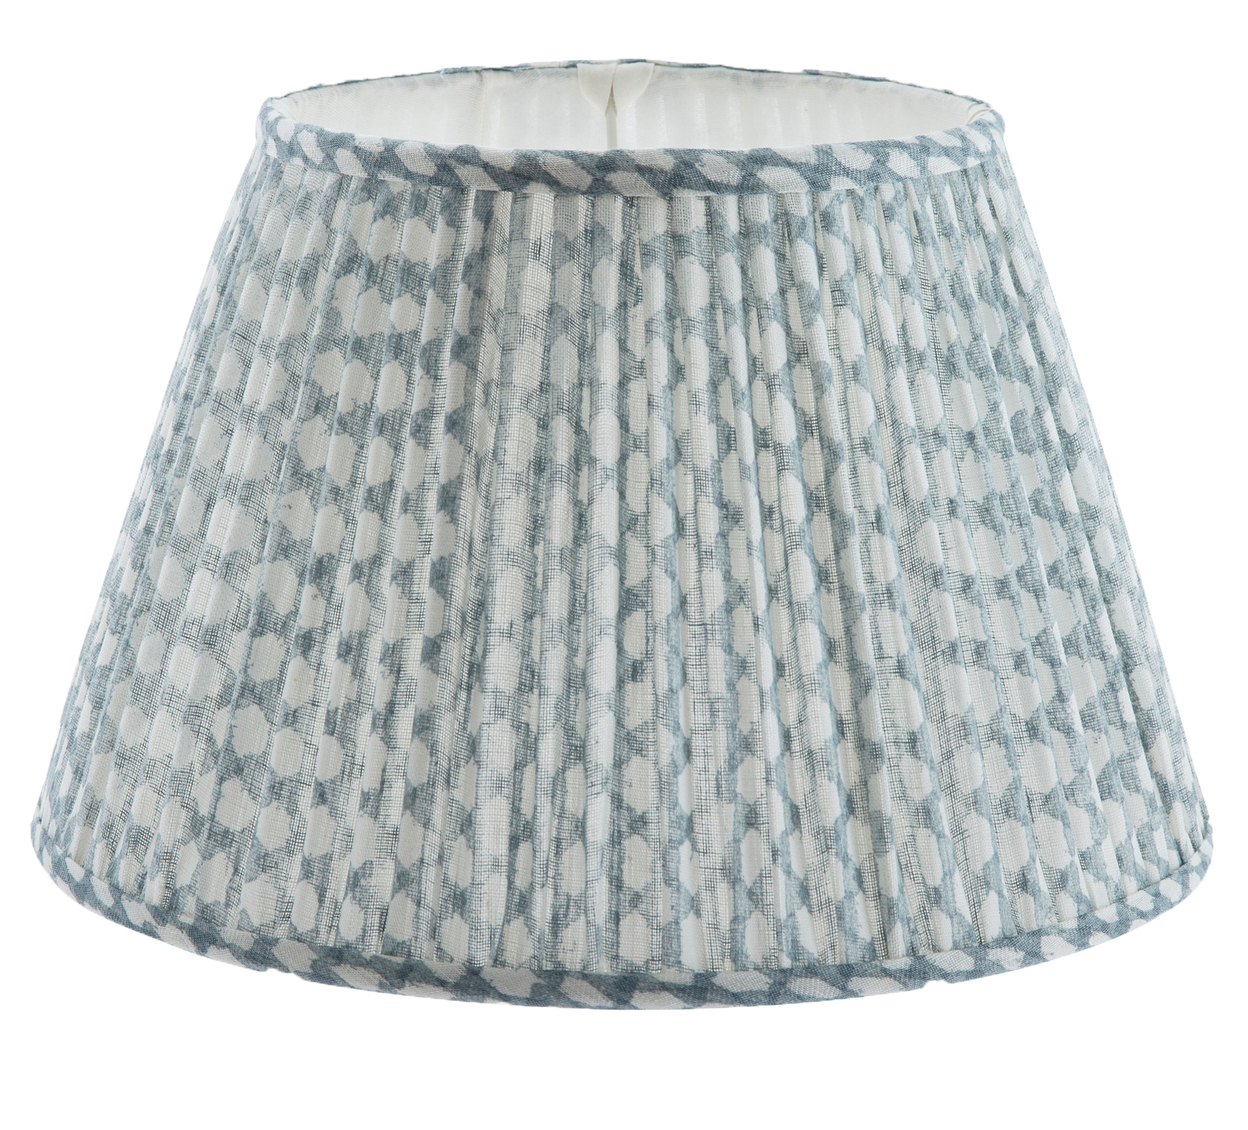 Gathered Bedwyn Shade, Wicker Light Blue